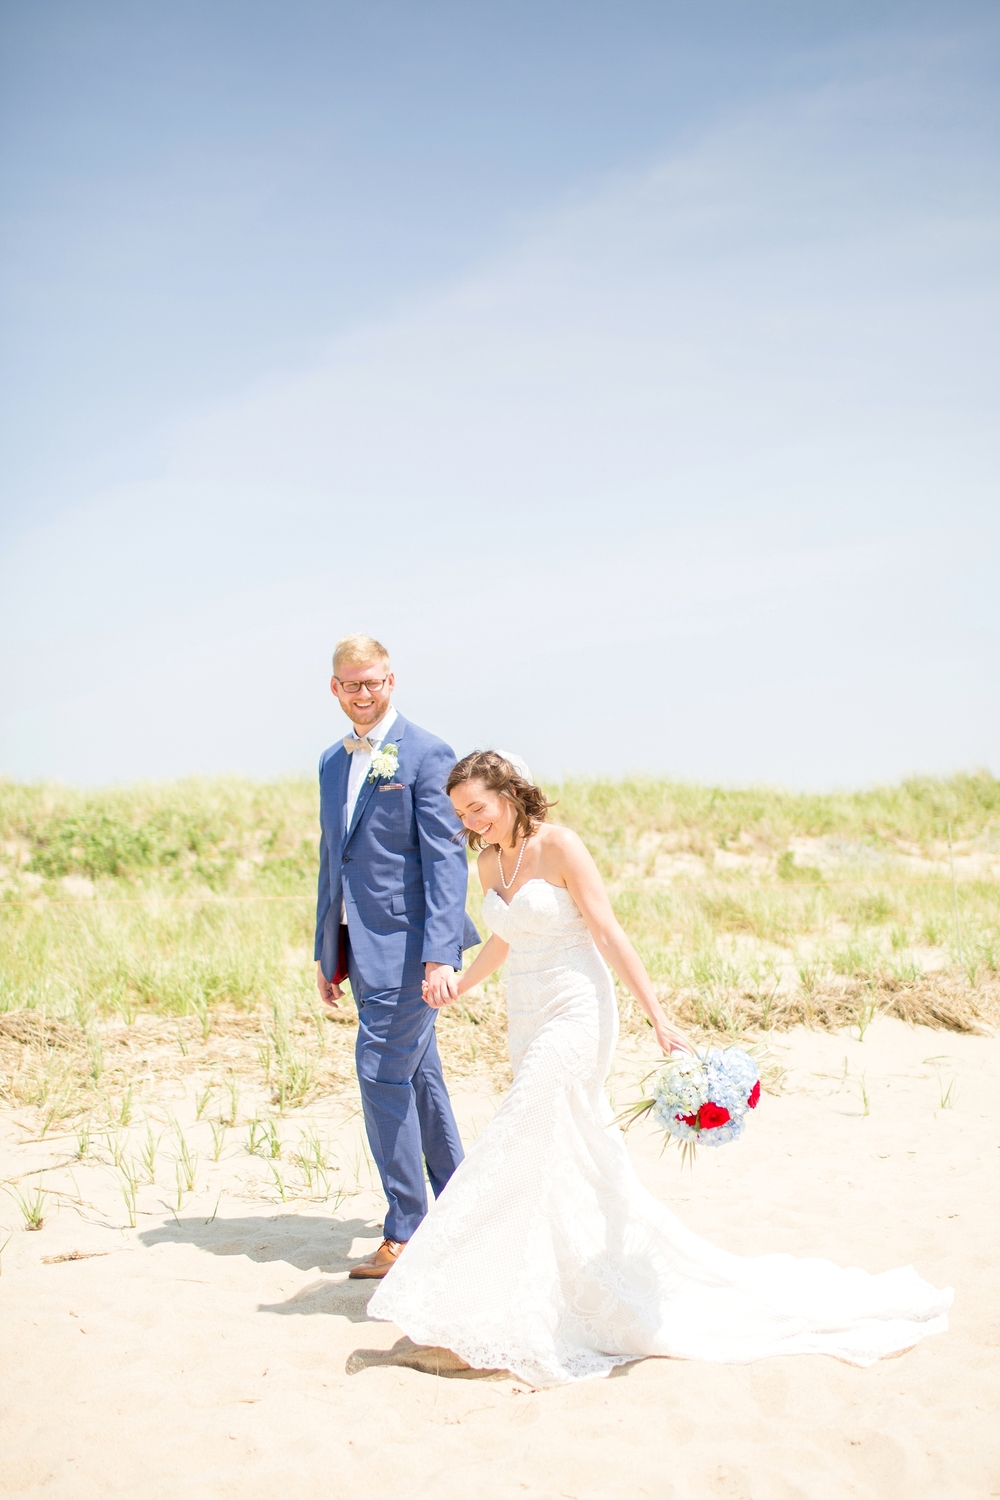 Goodman 3-Bride & Groom Portraits-253_anna grace photography wellfleet cape cod massachusetts destination wedding photographer Chequessett Yacht and Country Club wedding photo.jpg